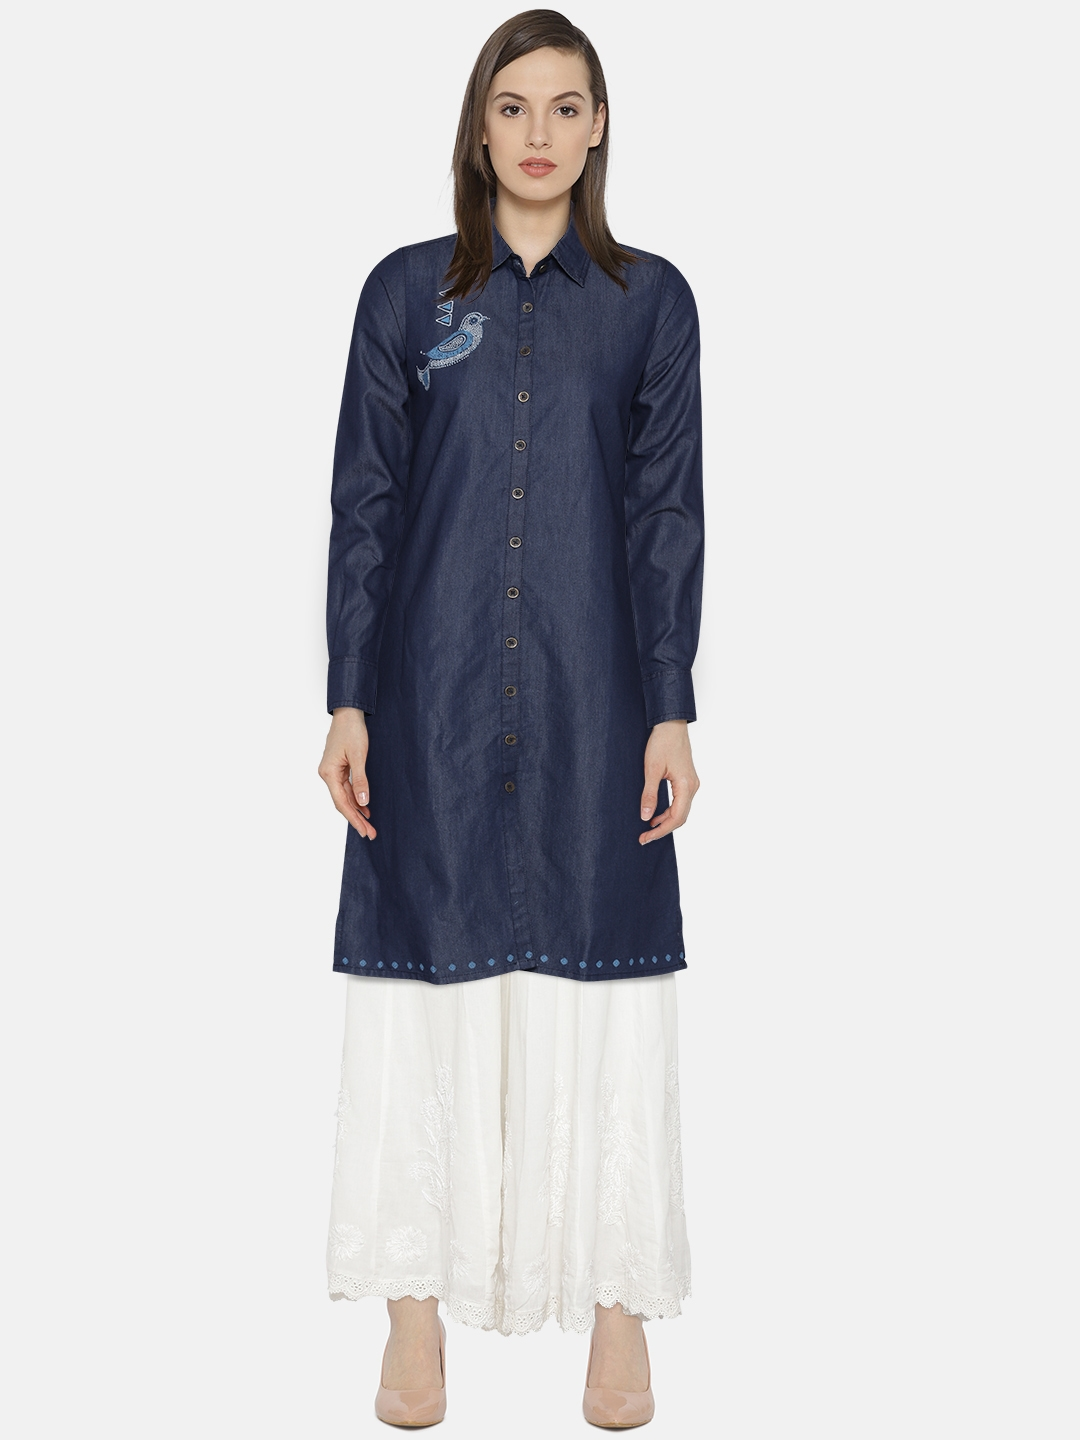 Buy Global Desi Women Blue Solid Chambray Shirt Dress Dresses For